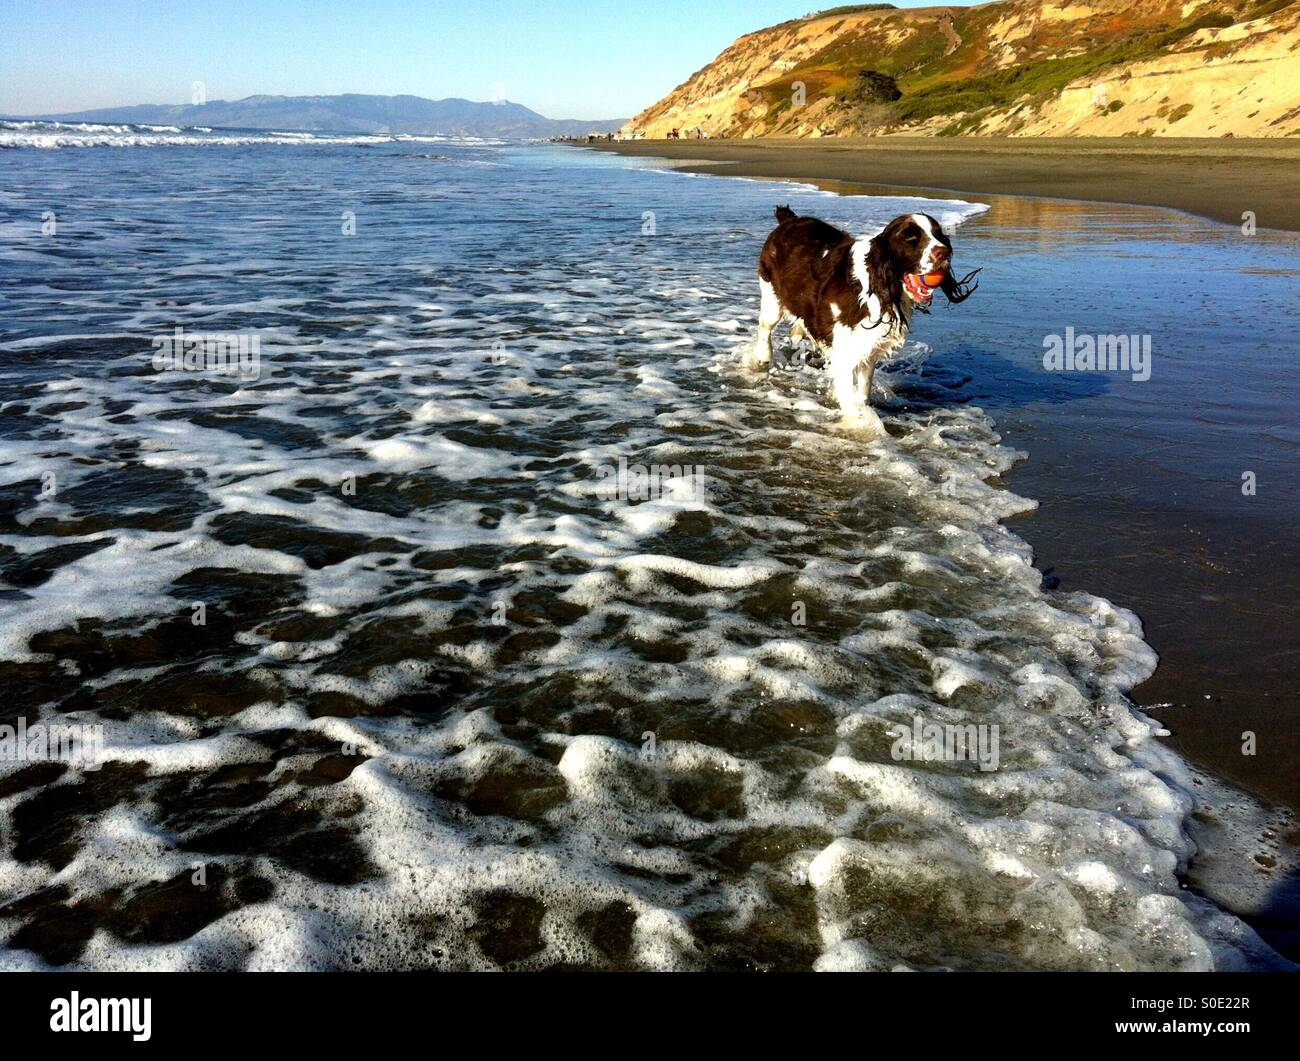 English Springer Spaniel girl proudly retrieves her ball in the Pacific shore break - Stock Image